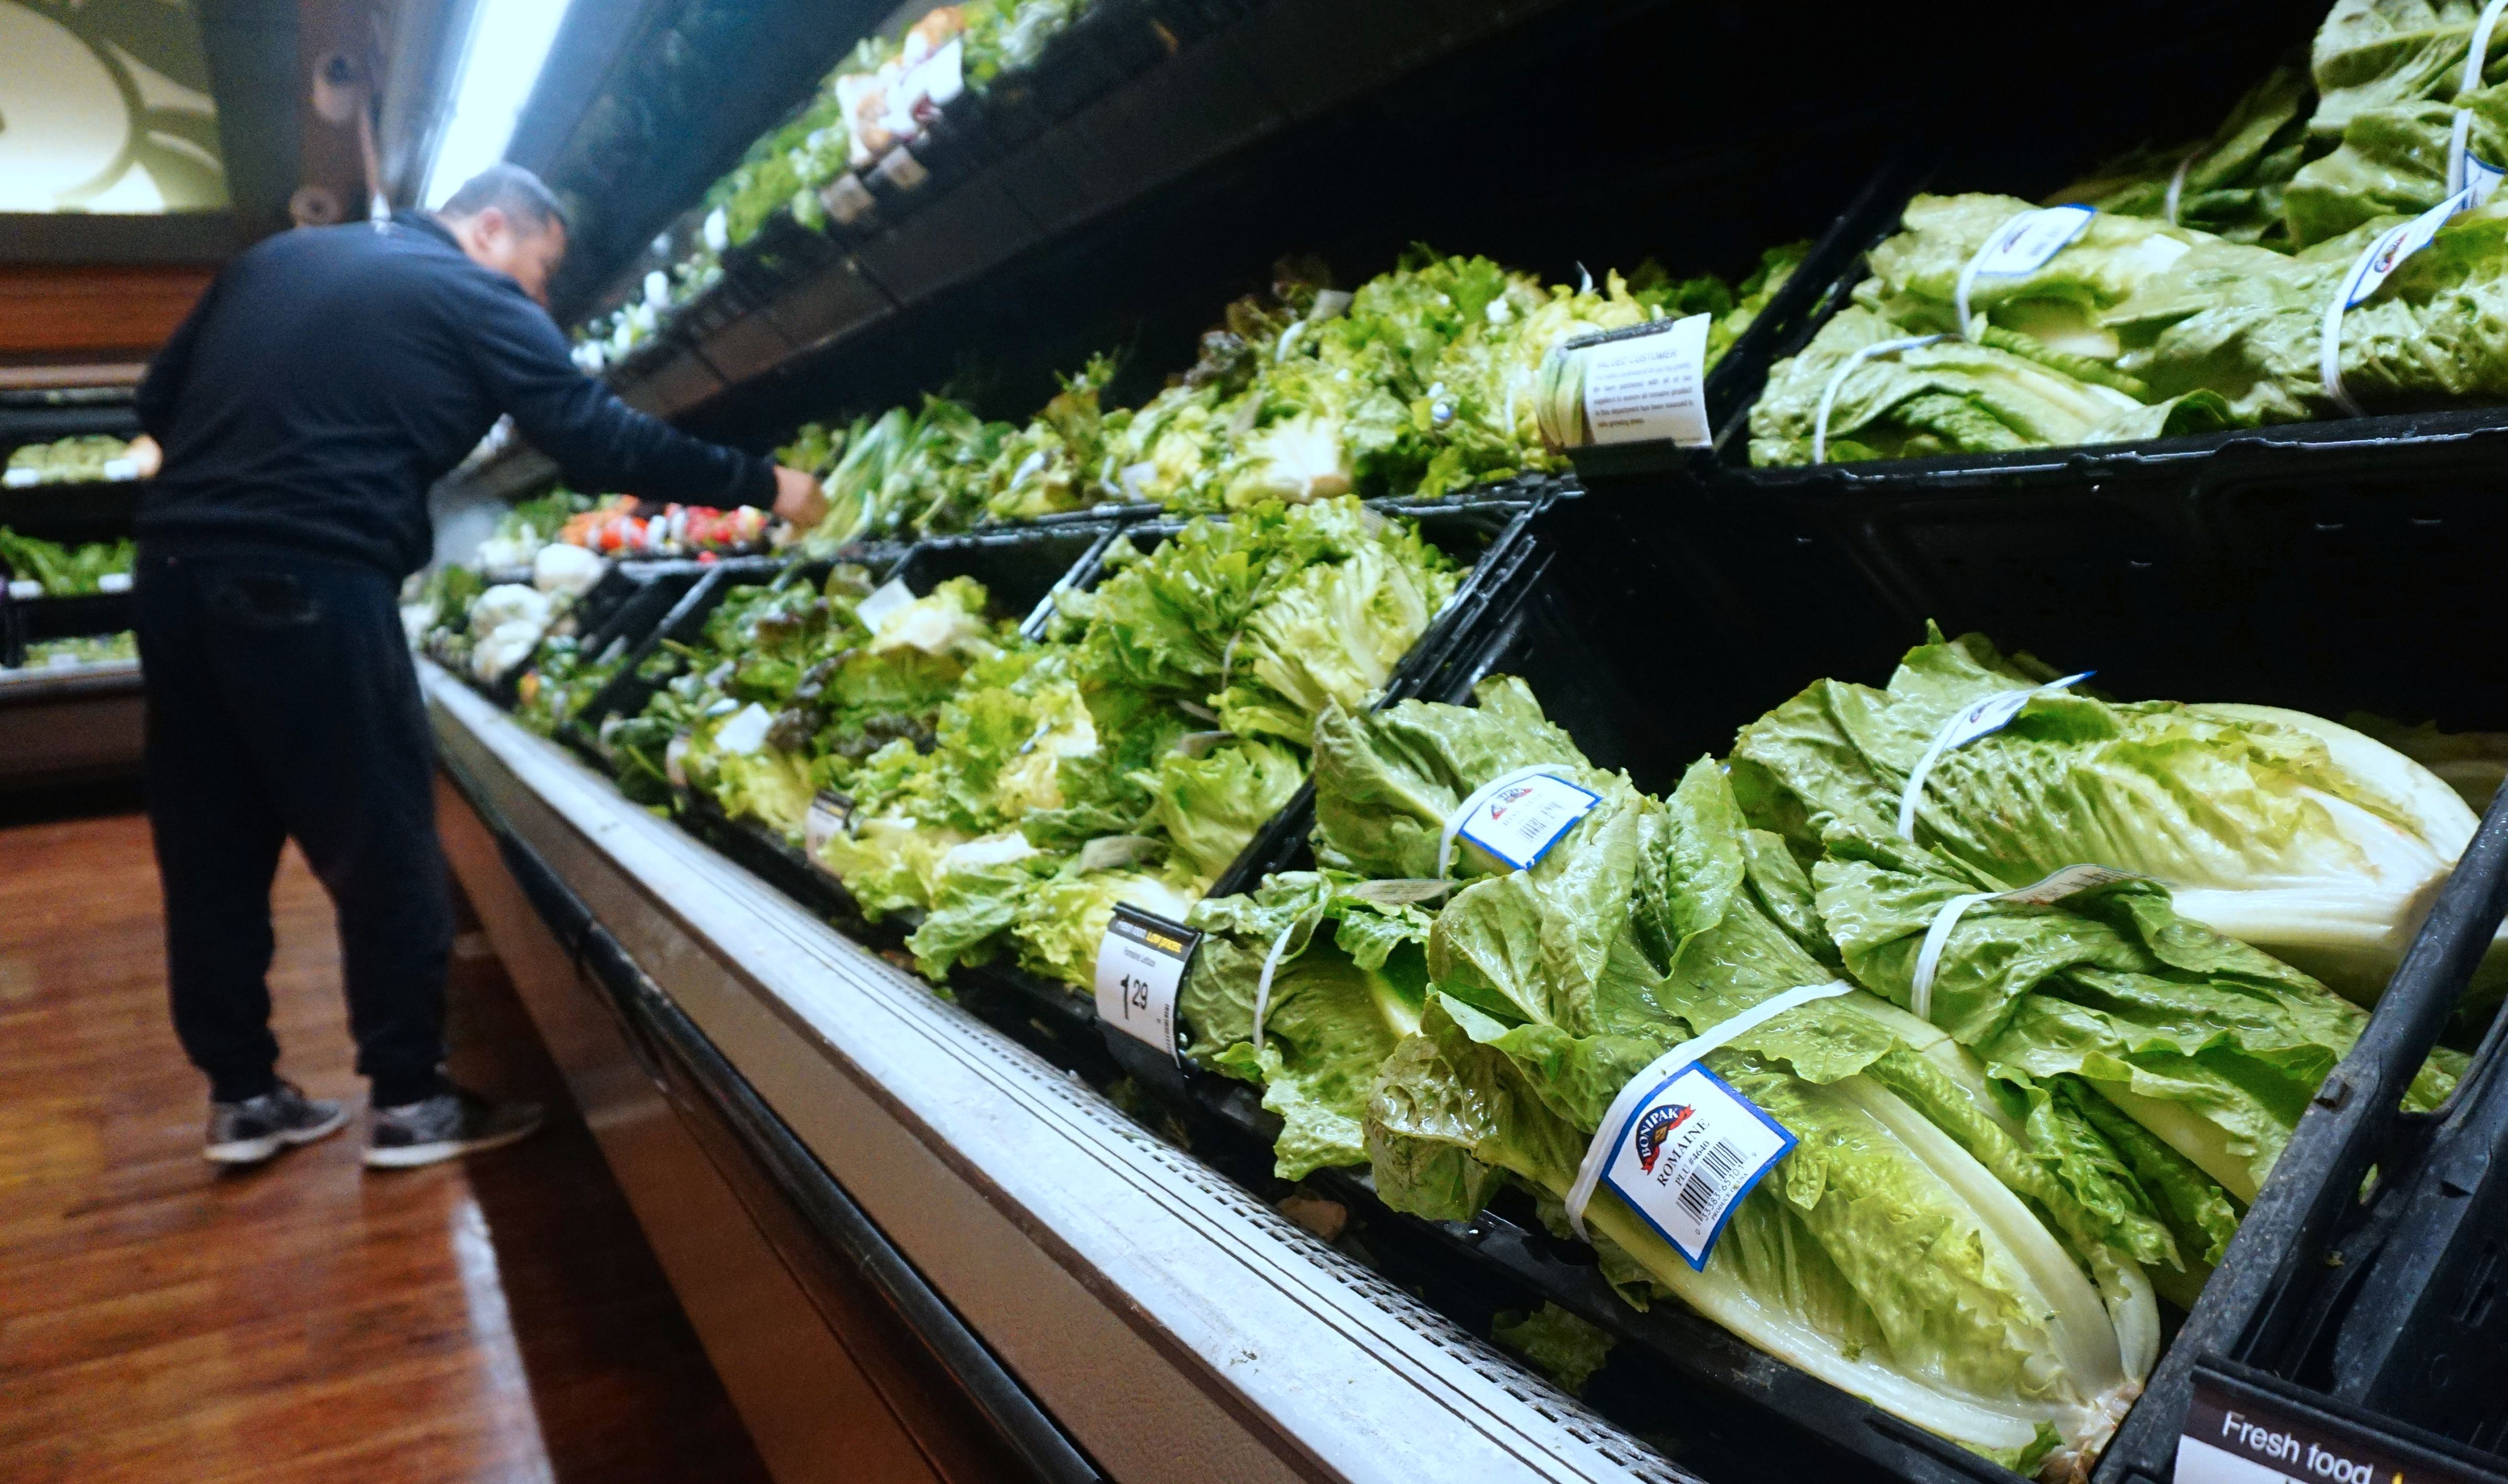 Health officials are urging that all romaine lettuce should be thrown away amid a multistate outbreak...